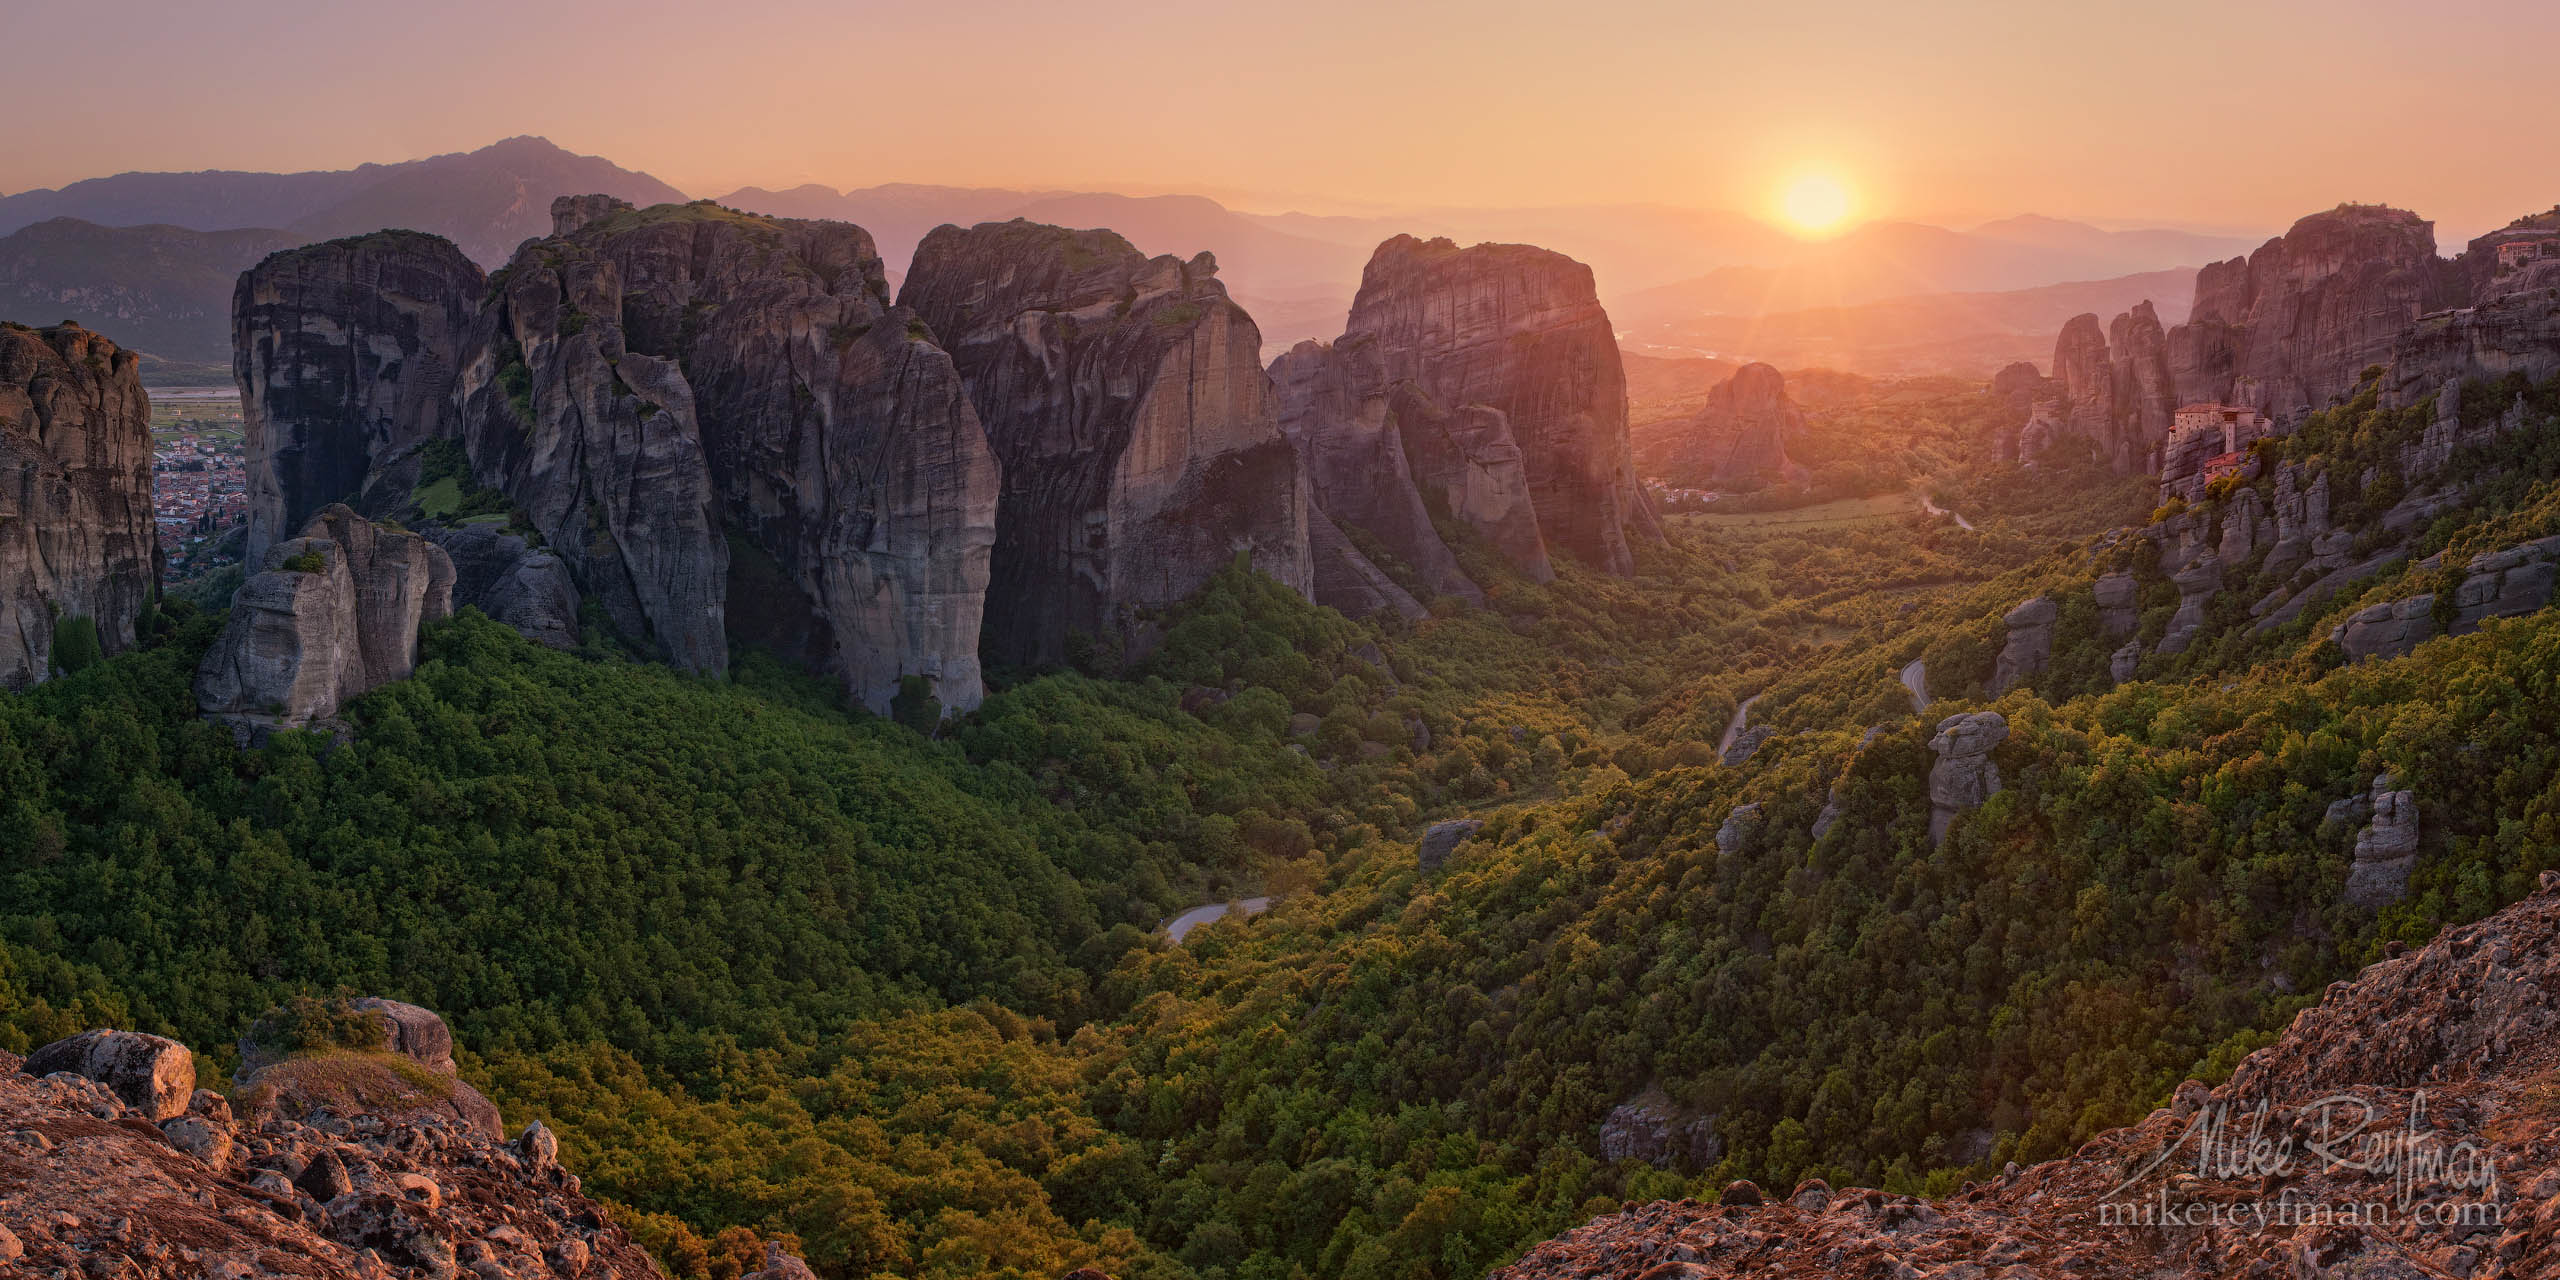 Roussanou Nunnery at sunset. Meteora Monasteries, Thessaly, Greece P12-MRAIR4886-935-Pano - Selected panoramic images with 2:1 aspect ratio - Mike Reyfman Photography